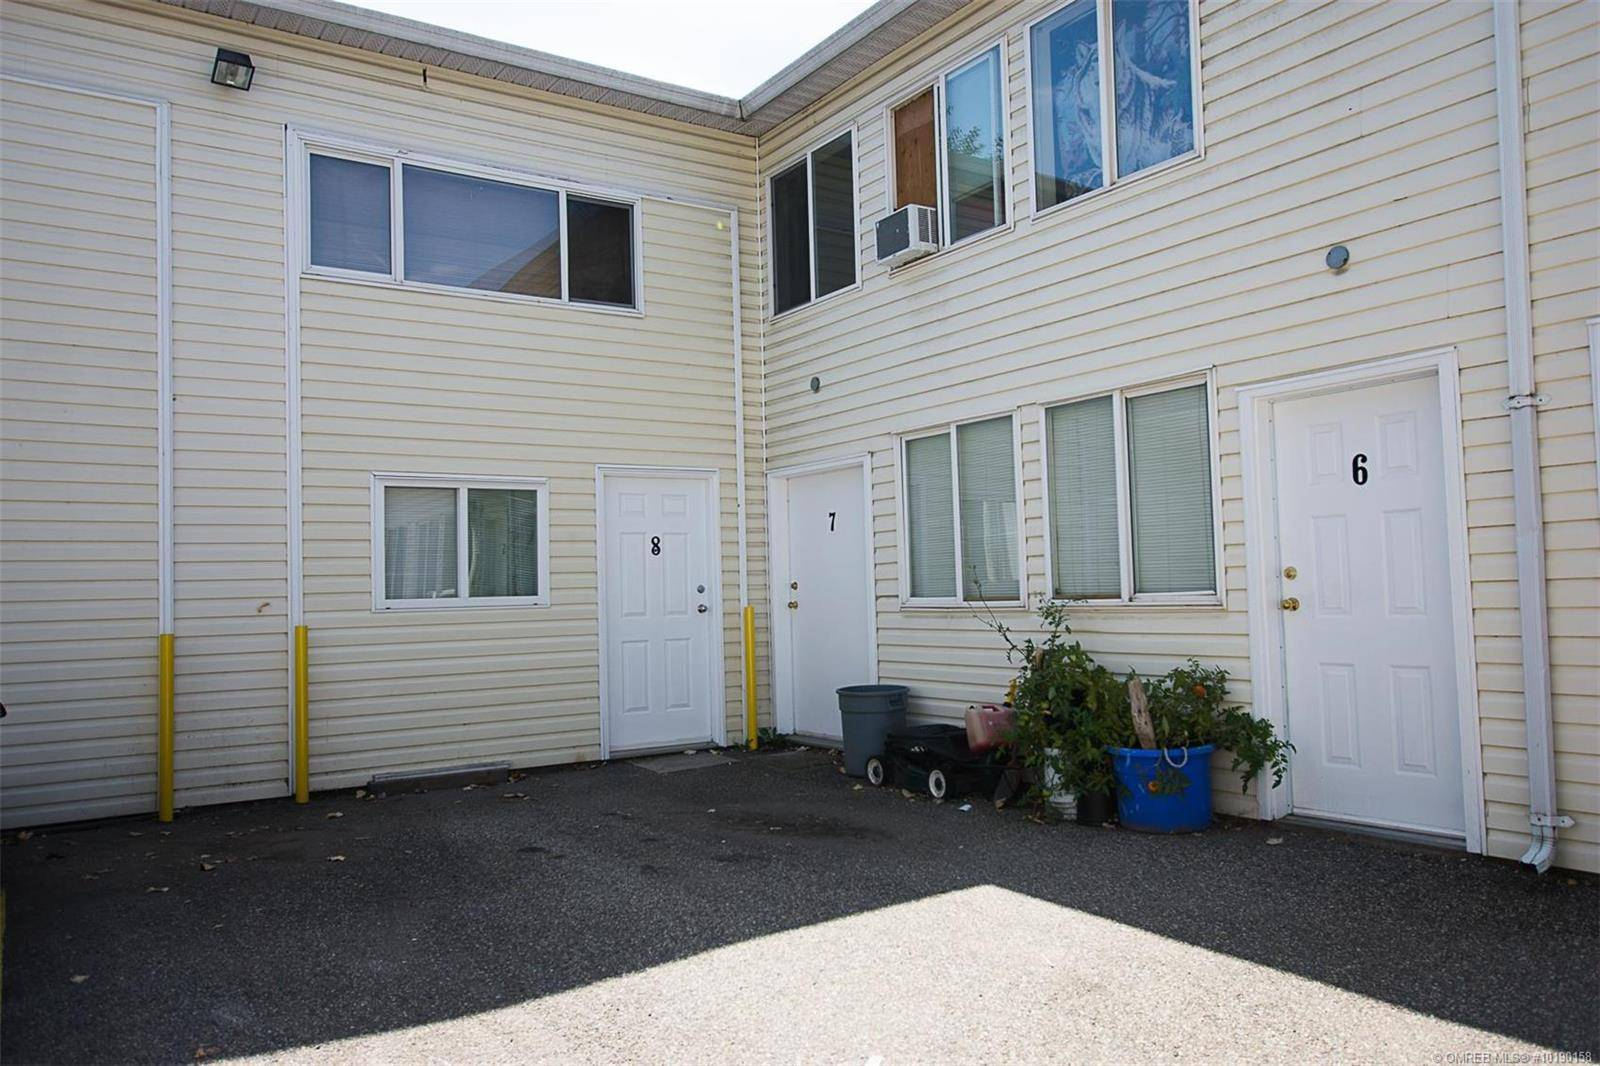 Home for sale at 2308 50th Ave Unit 8 Vernon British Columbia - MLS: 10190158